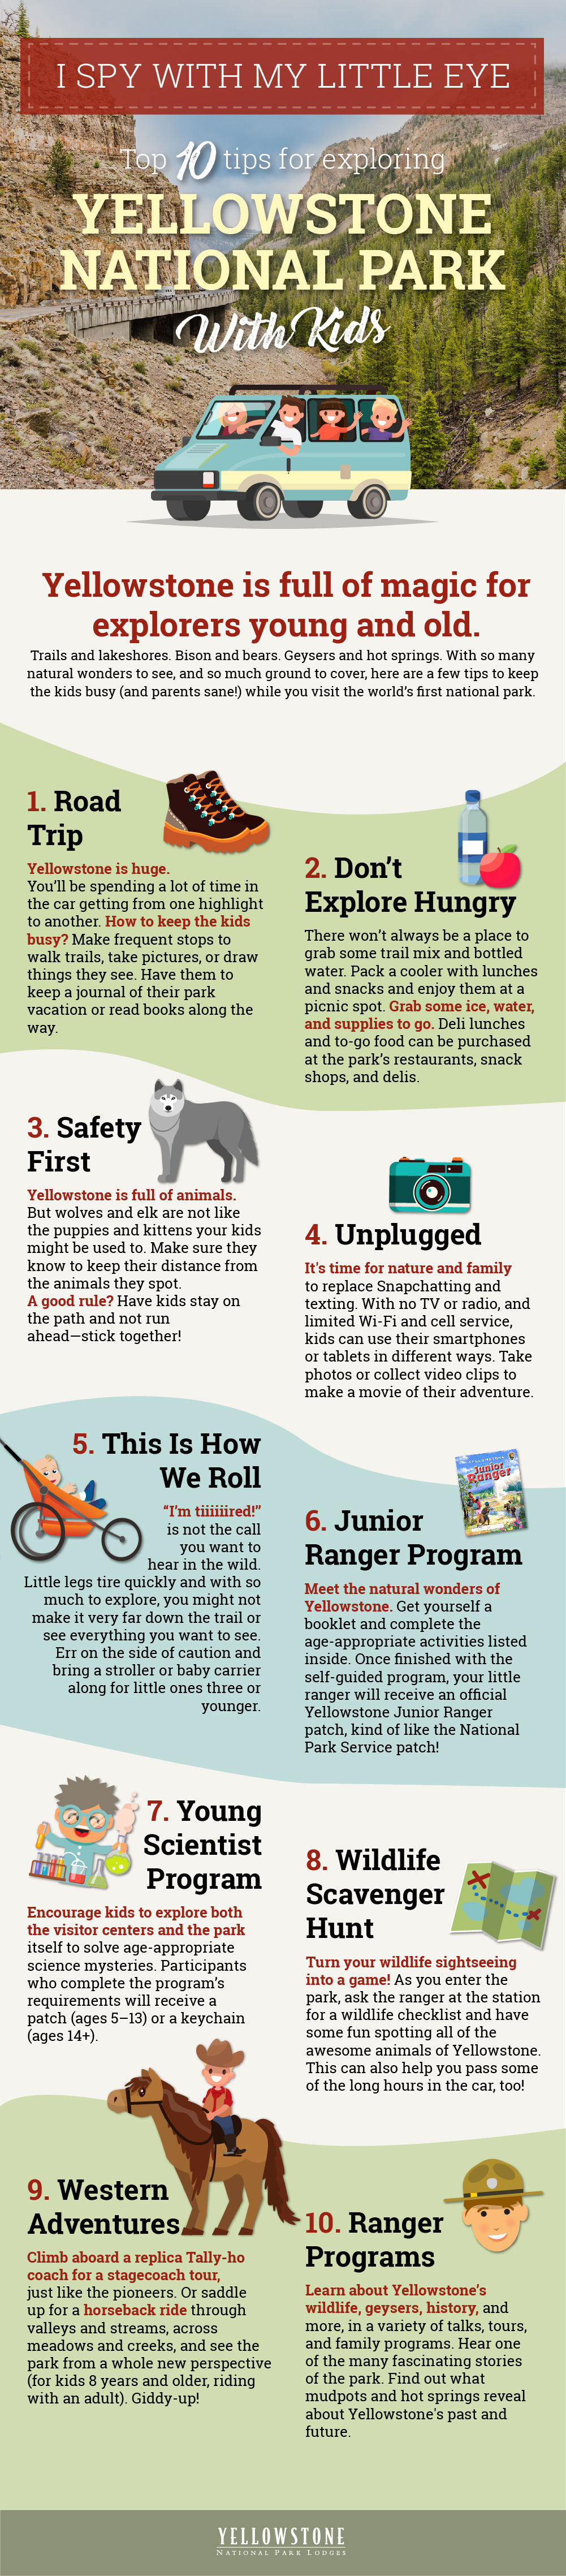 10 tips for Exploring Yellowstone National Park With Kids Infographic